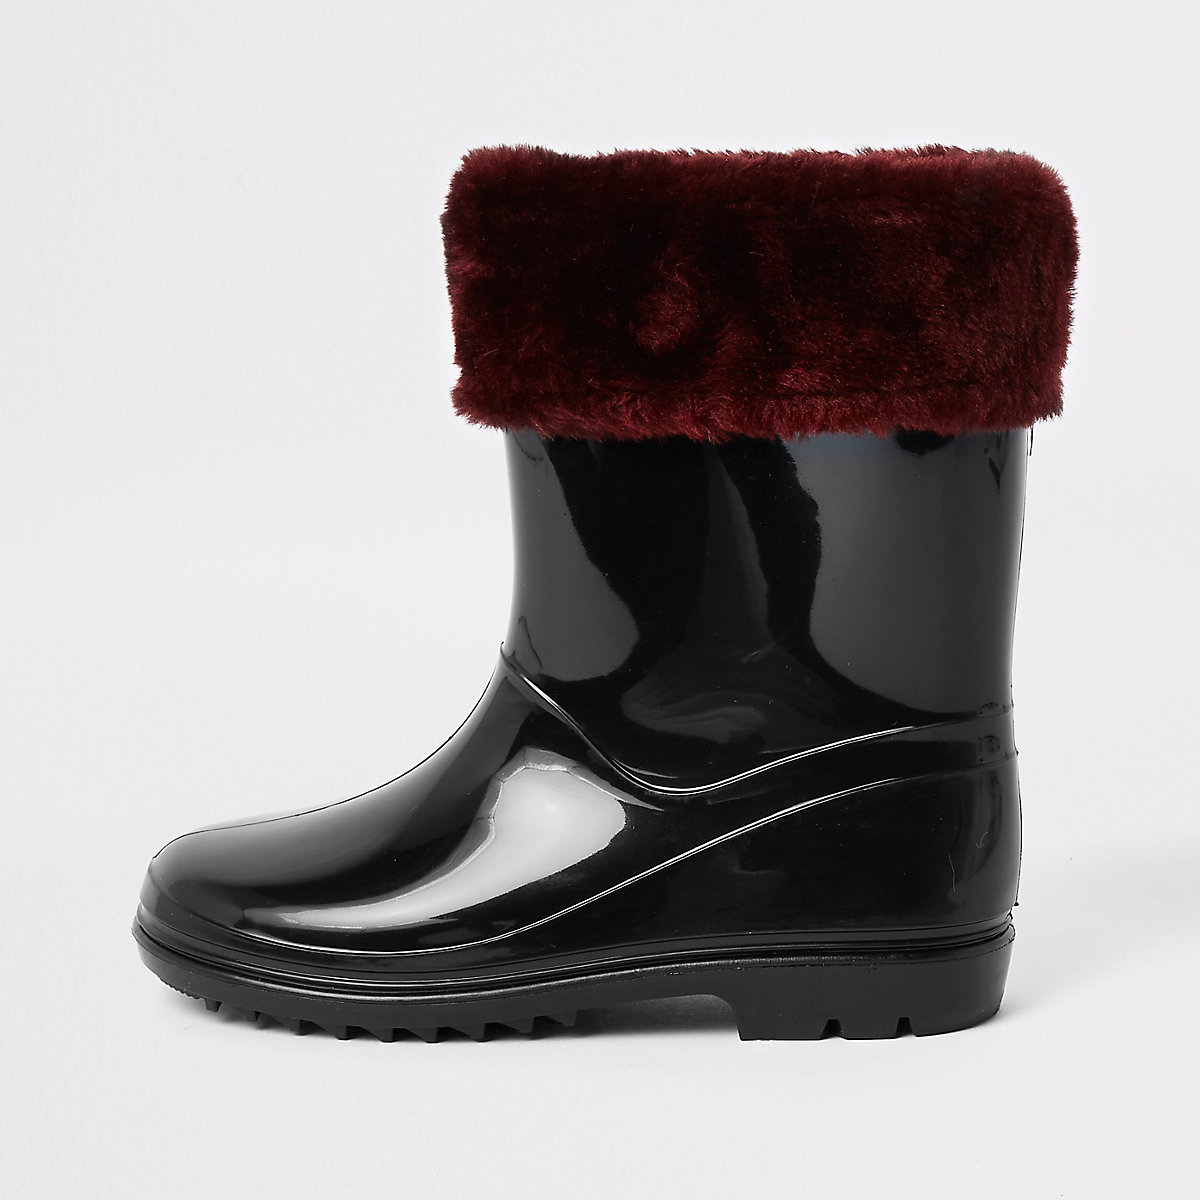 Girls black faux fur foldover wellies